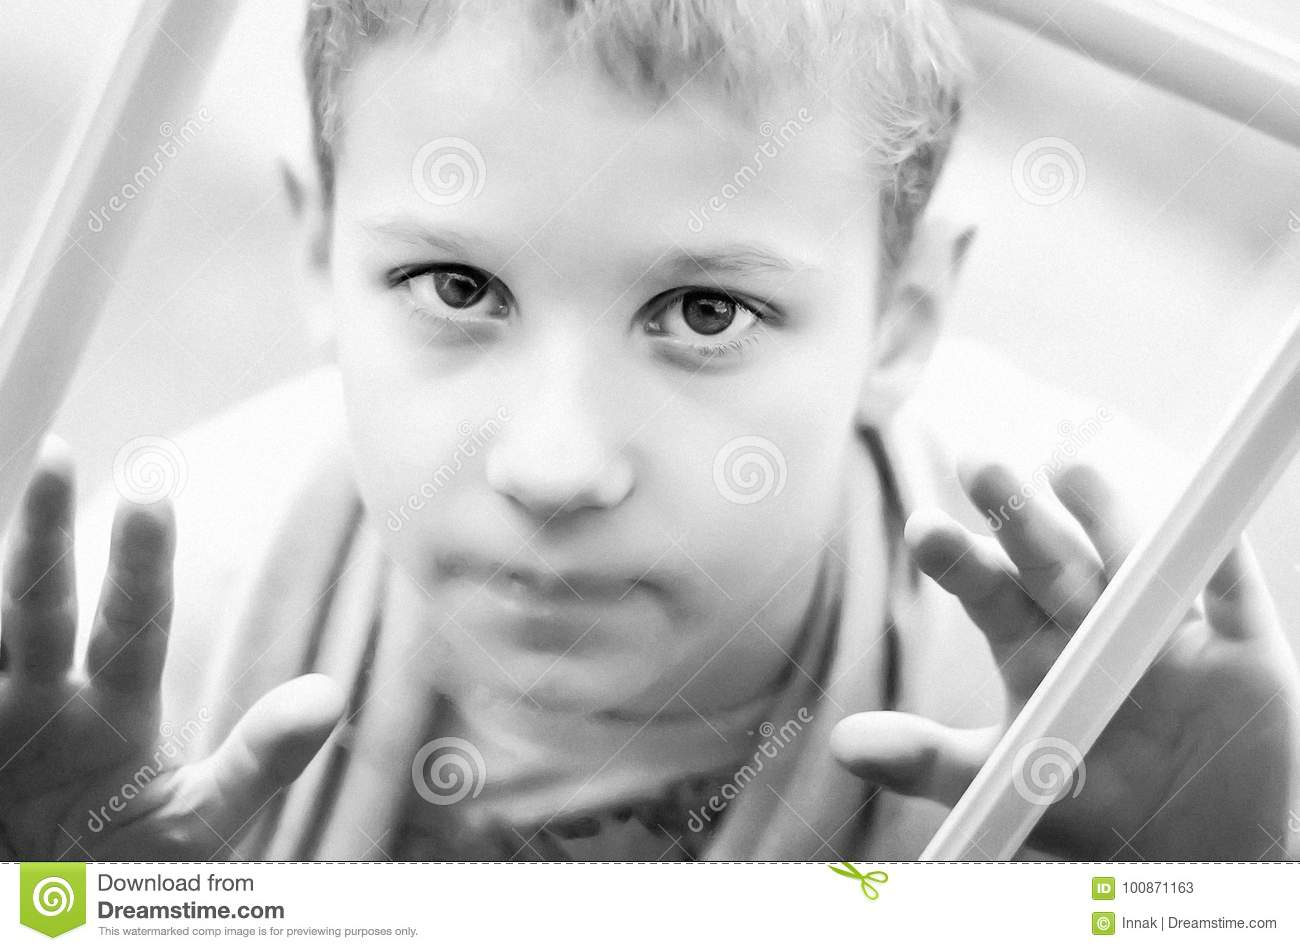 Little Sad Boy Looks Out The Window Black And White Photo Of A Close Up Child Hungry Child With Big Clear Eyes Eating Bread Stock Image Image Of Child Empty 100871163